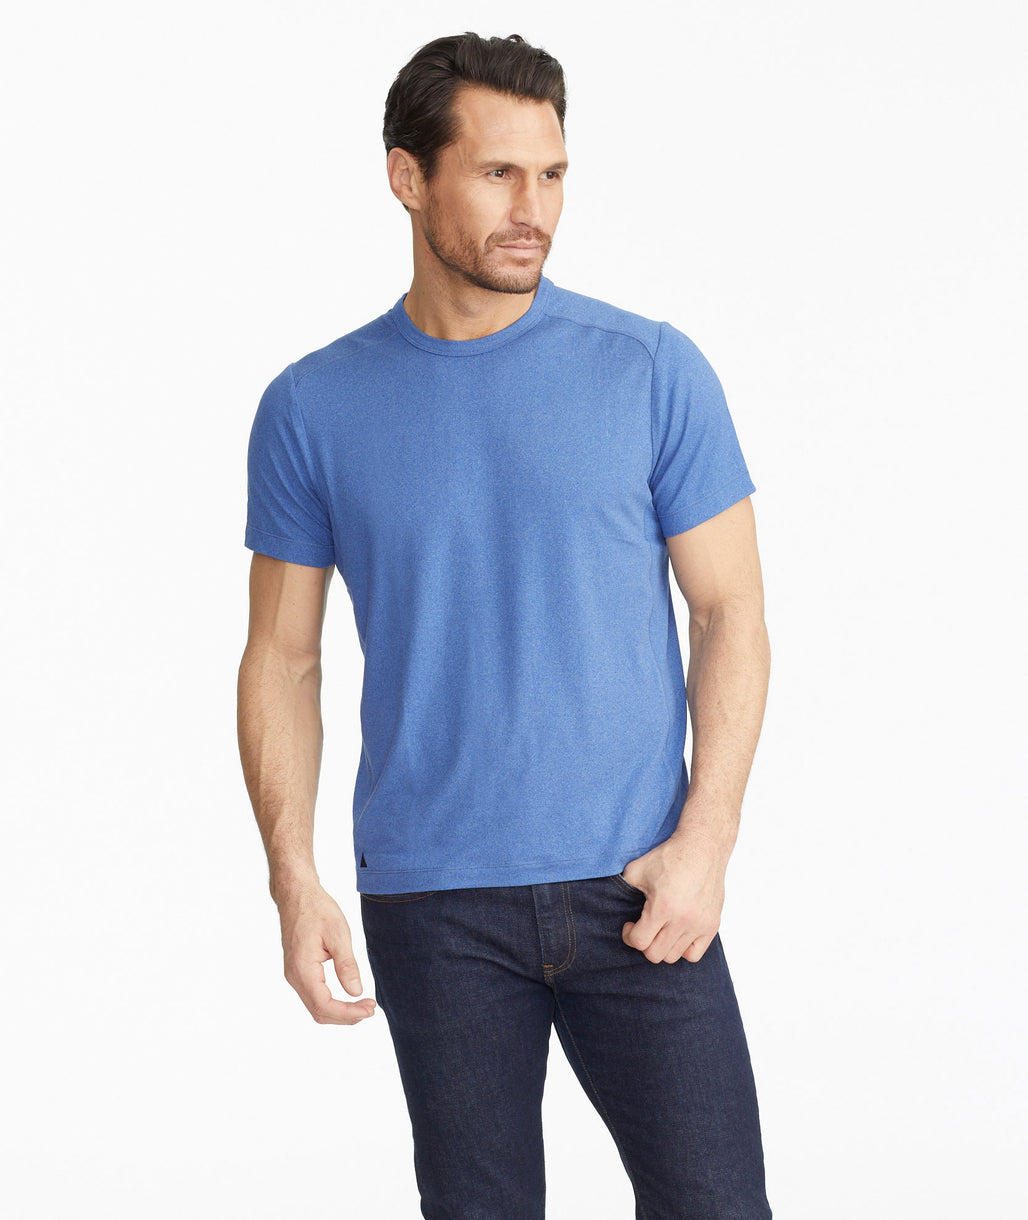 Model wearing a Bright Blue Performance Tee